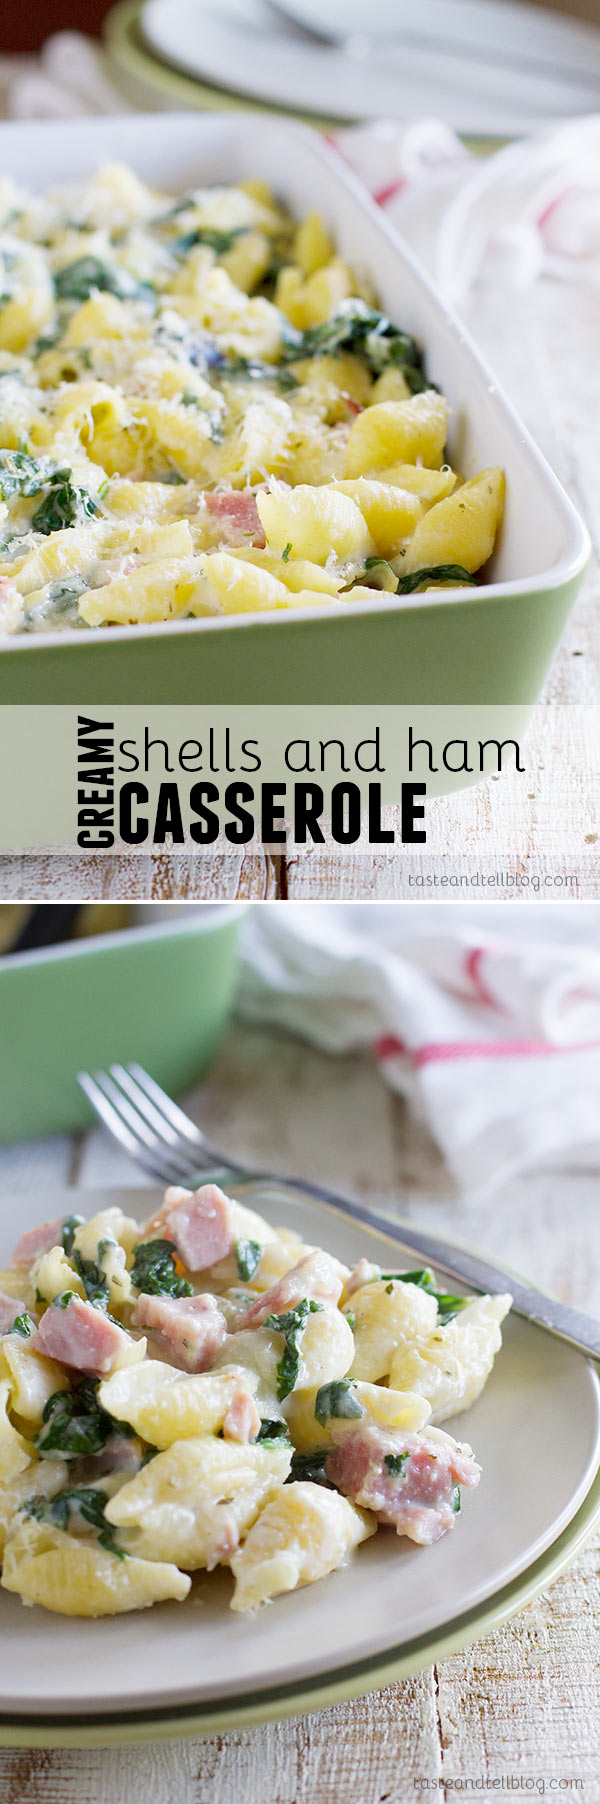 This kid-friendly Creamy Shells and Ham Casserole has pasta coated in a creamy sauce plus ham and spinach that adds tons of flavor. A great way to use up leftover holiday ham!